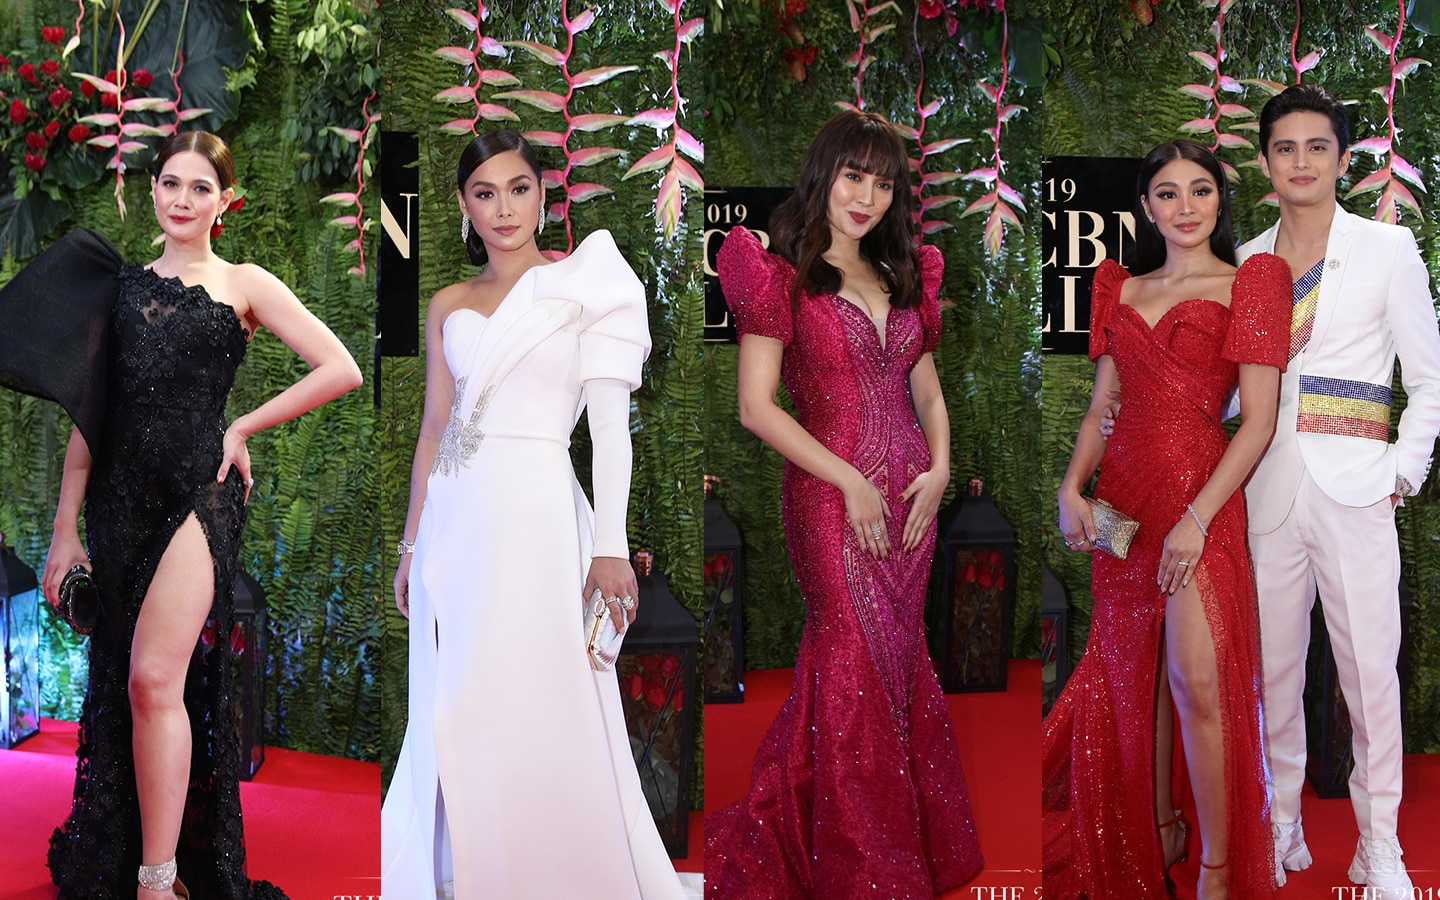 The Most Glowing Stars at the ABS-CBN Ball